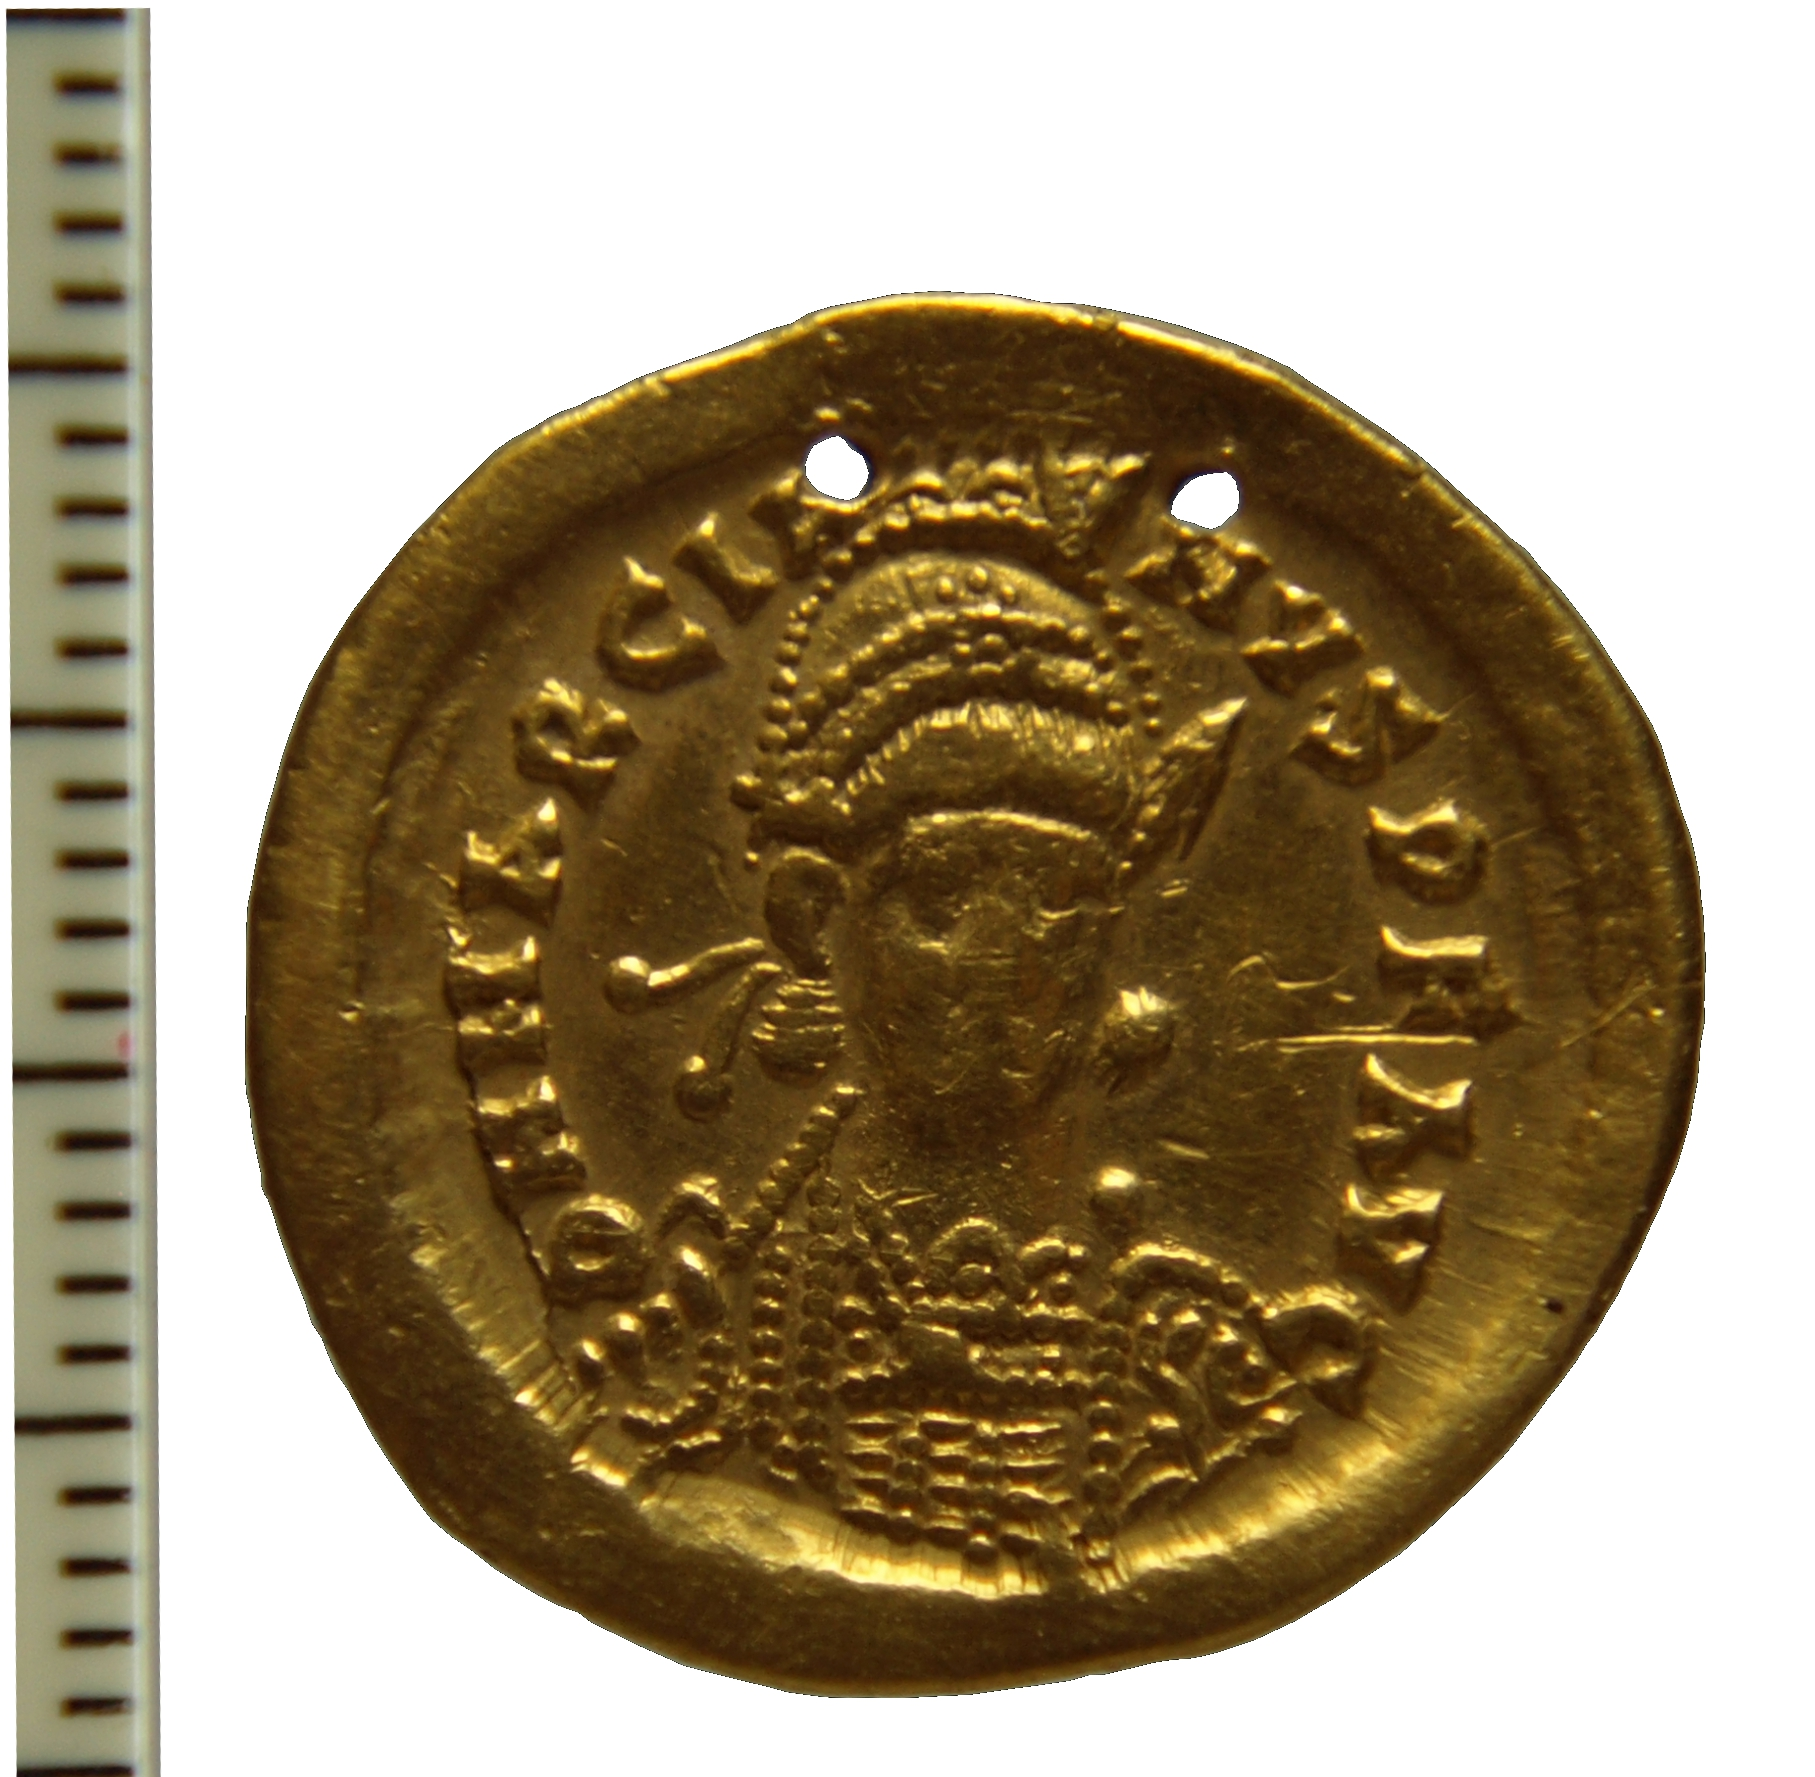 Solidus of the emperor Marcian, found in India, 4.34g,  Madras Government Museum, Darley Catalogue No. 15.